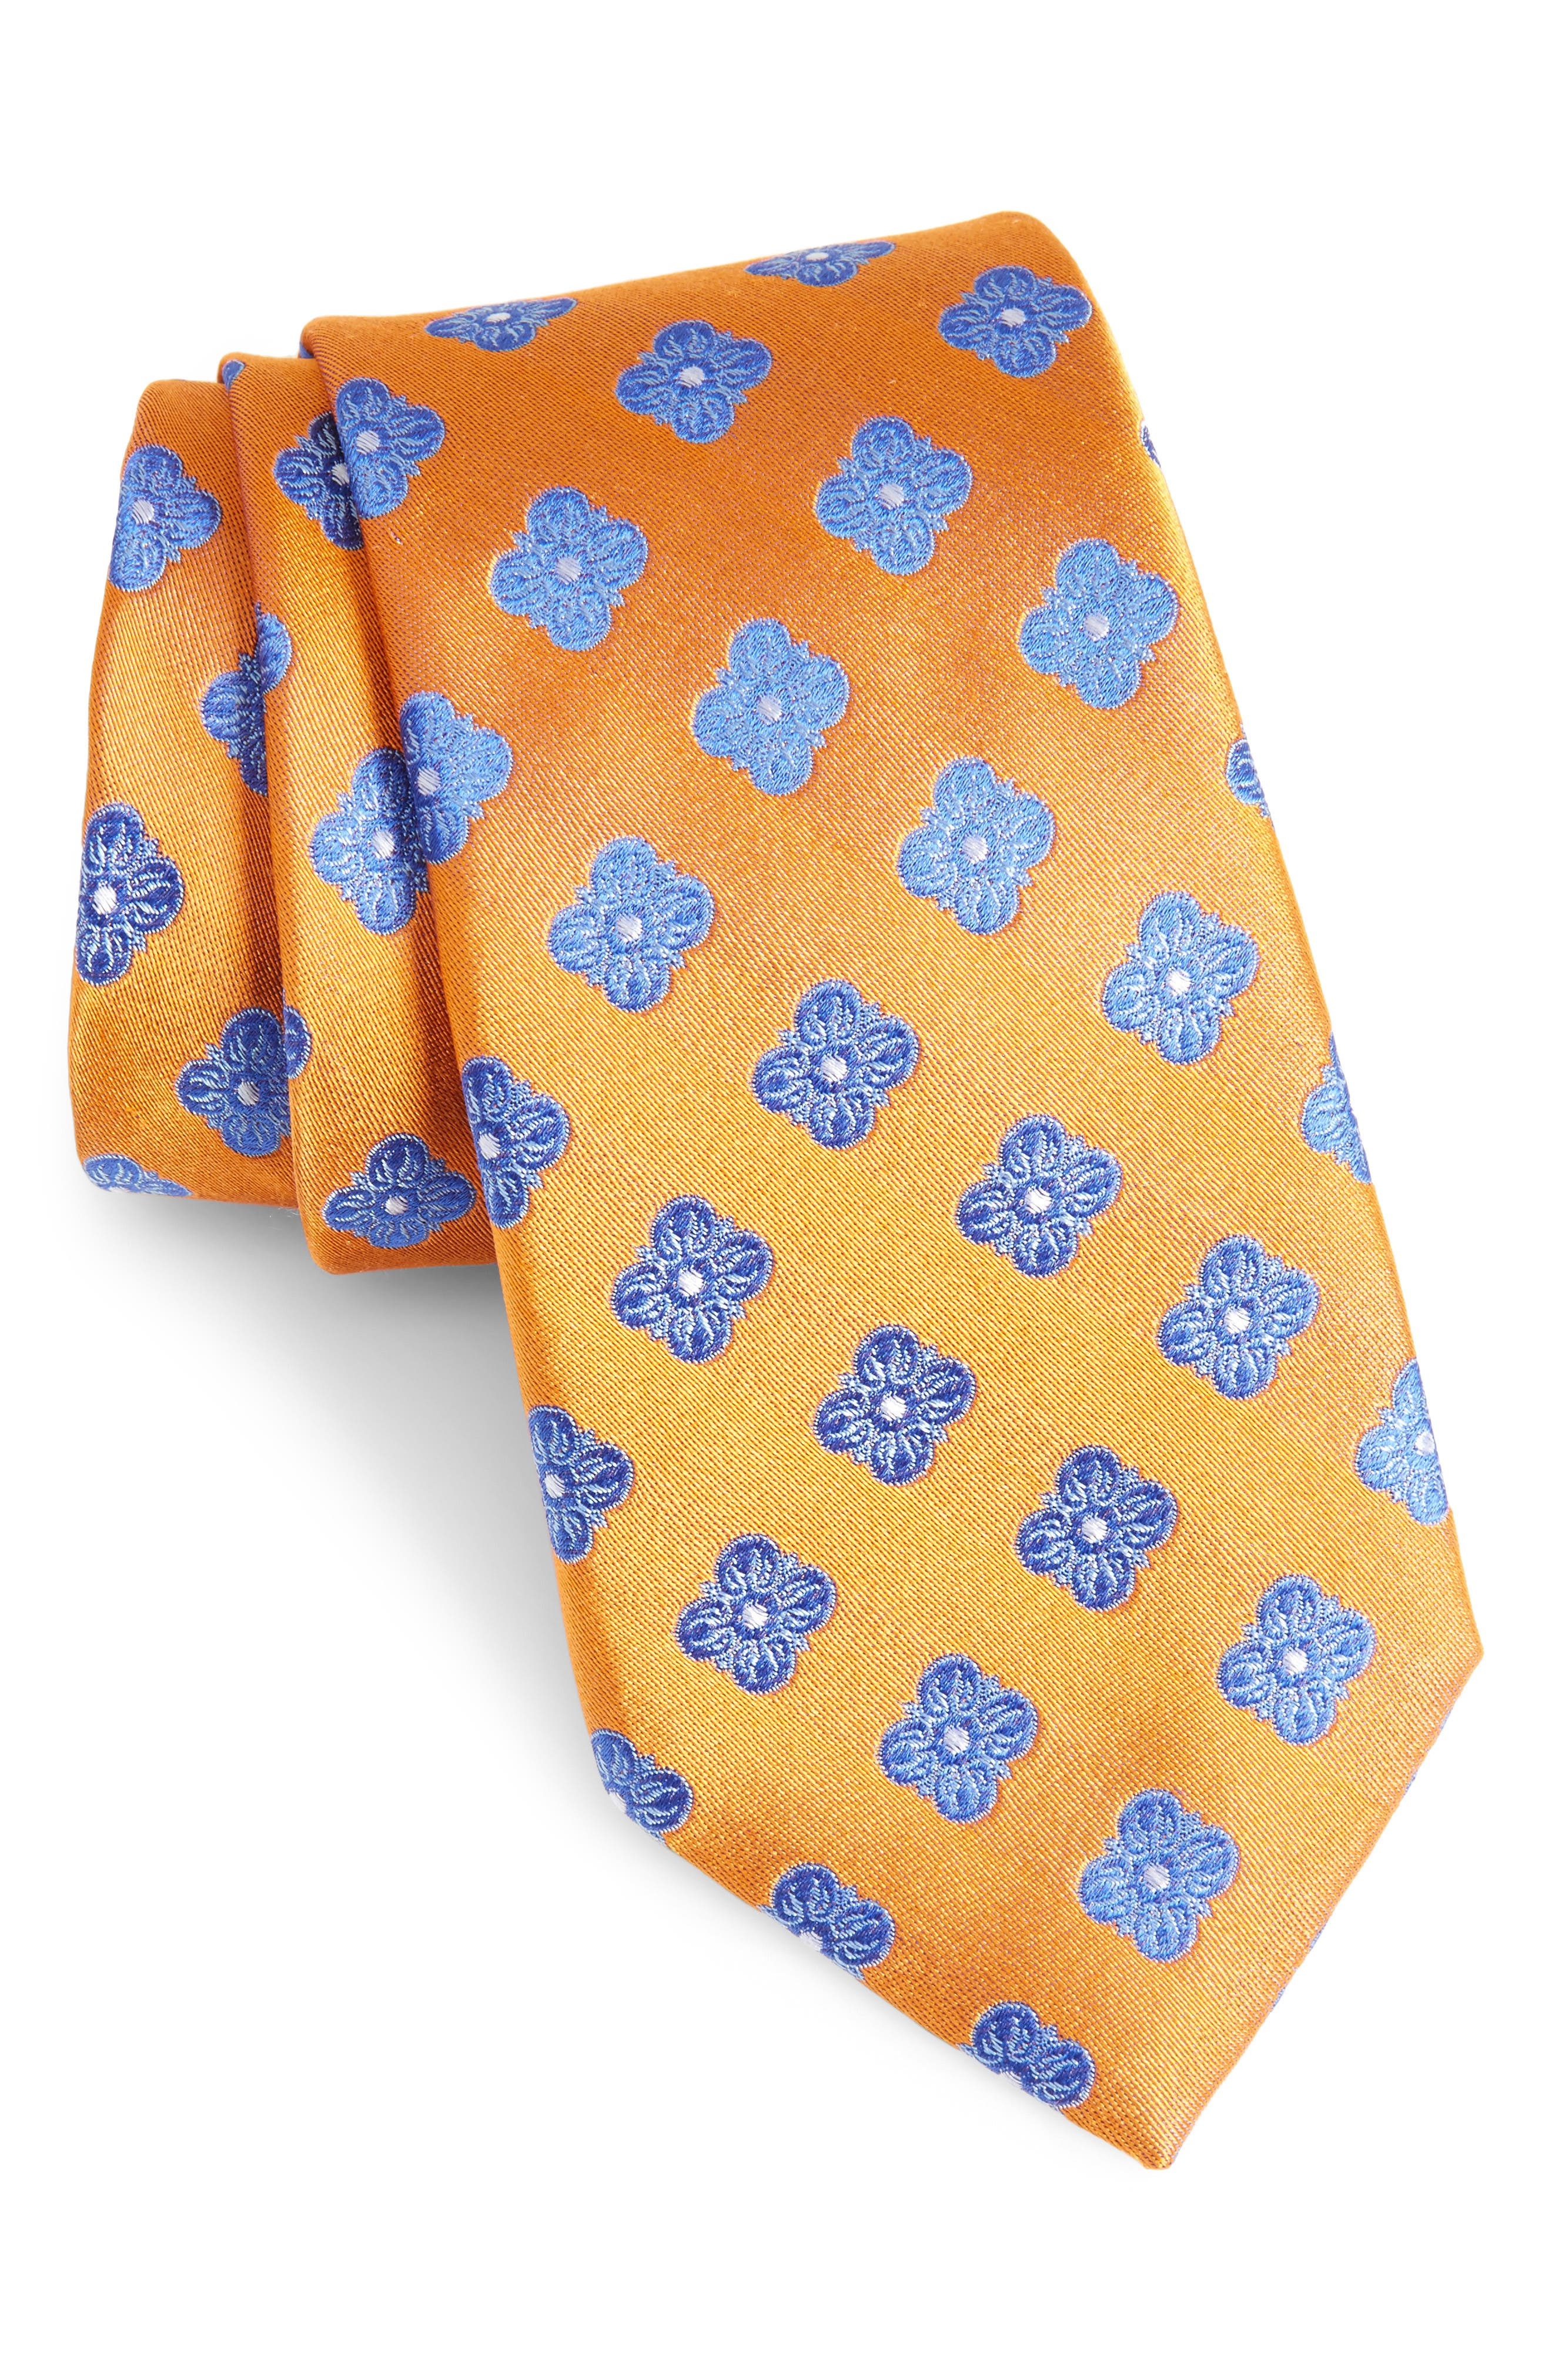 Cameron Floral Medallion Silk Tie,                             Main thumbnail 1, color,                             Orange